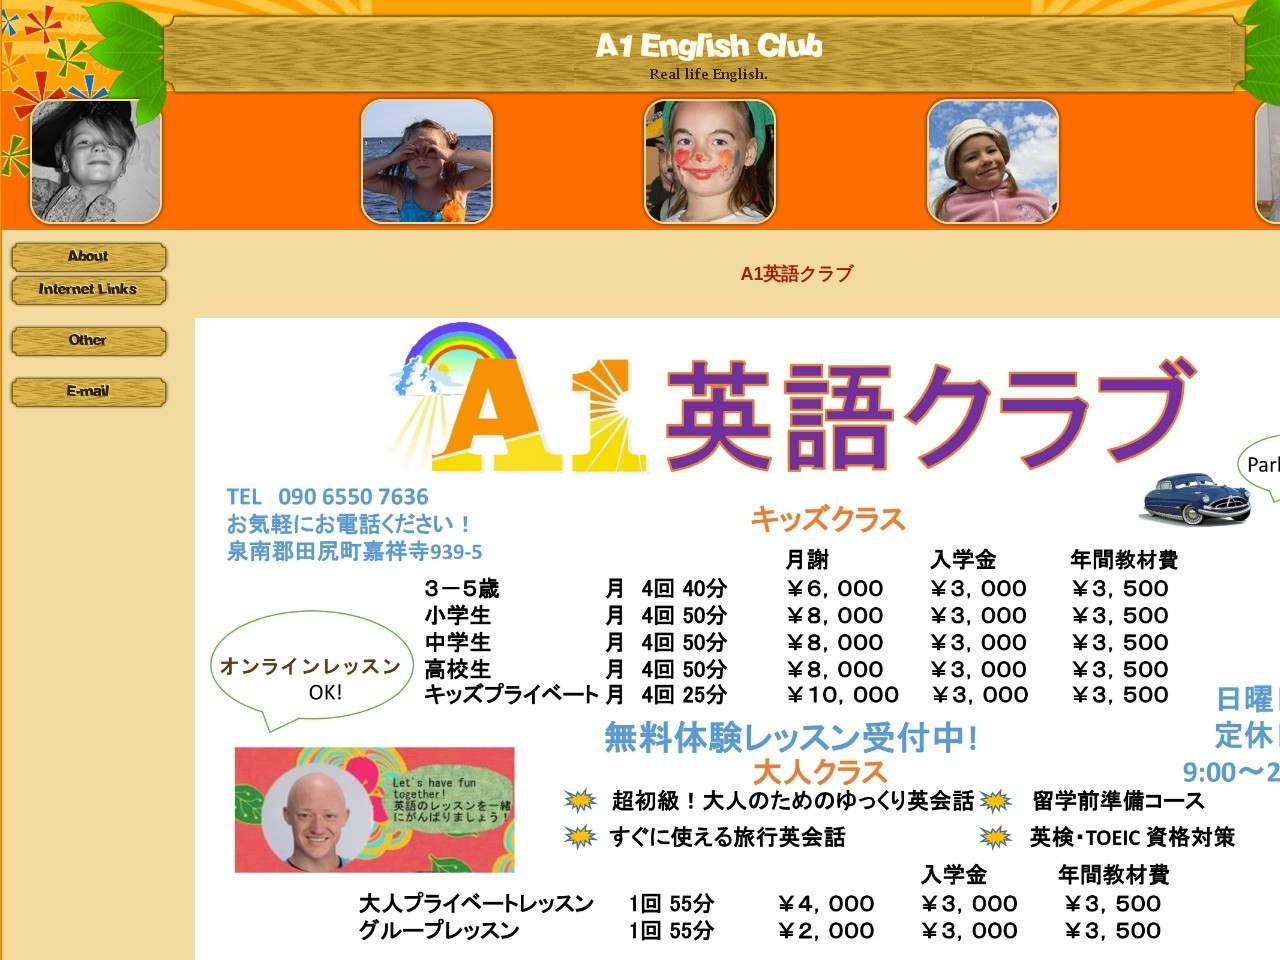 A1英語クラブ